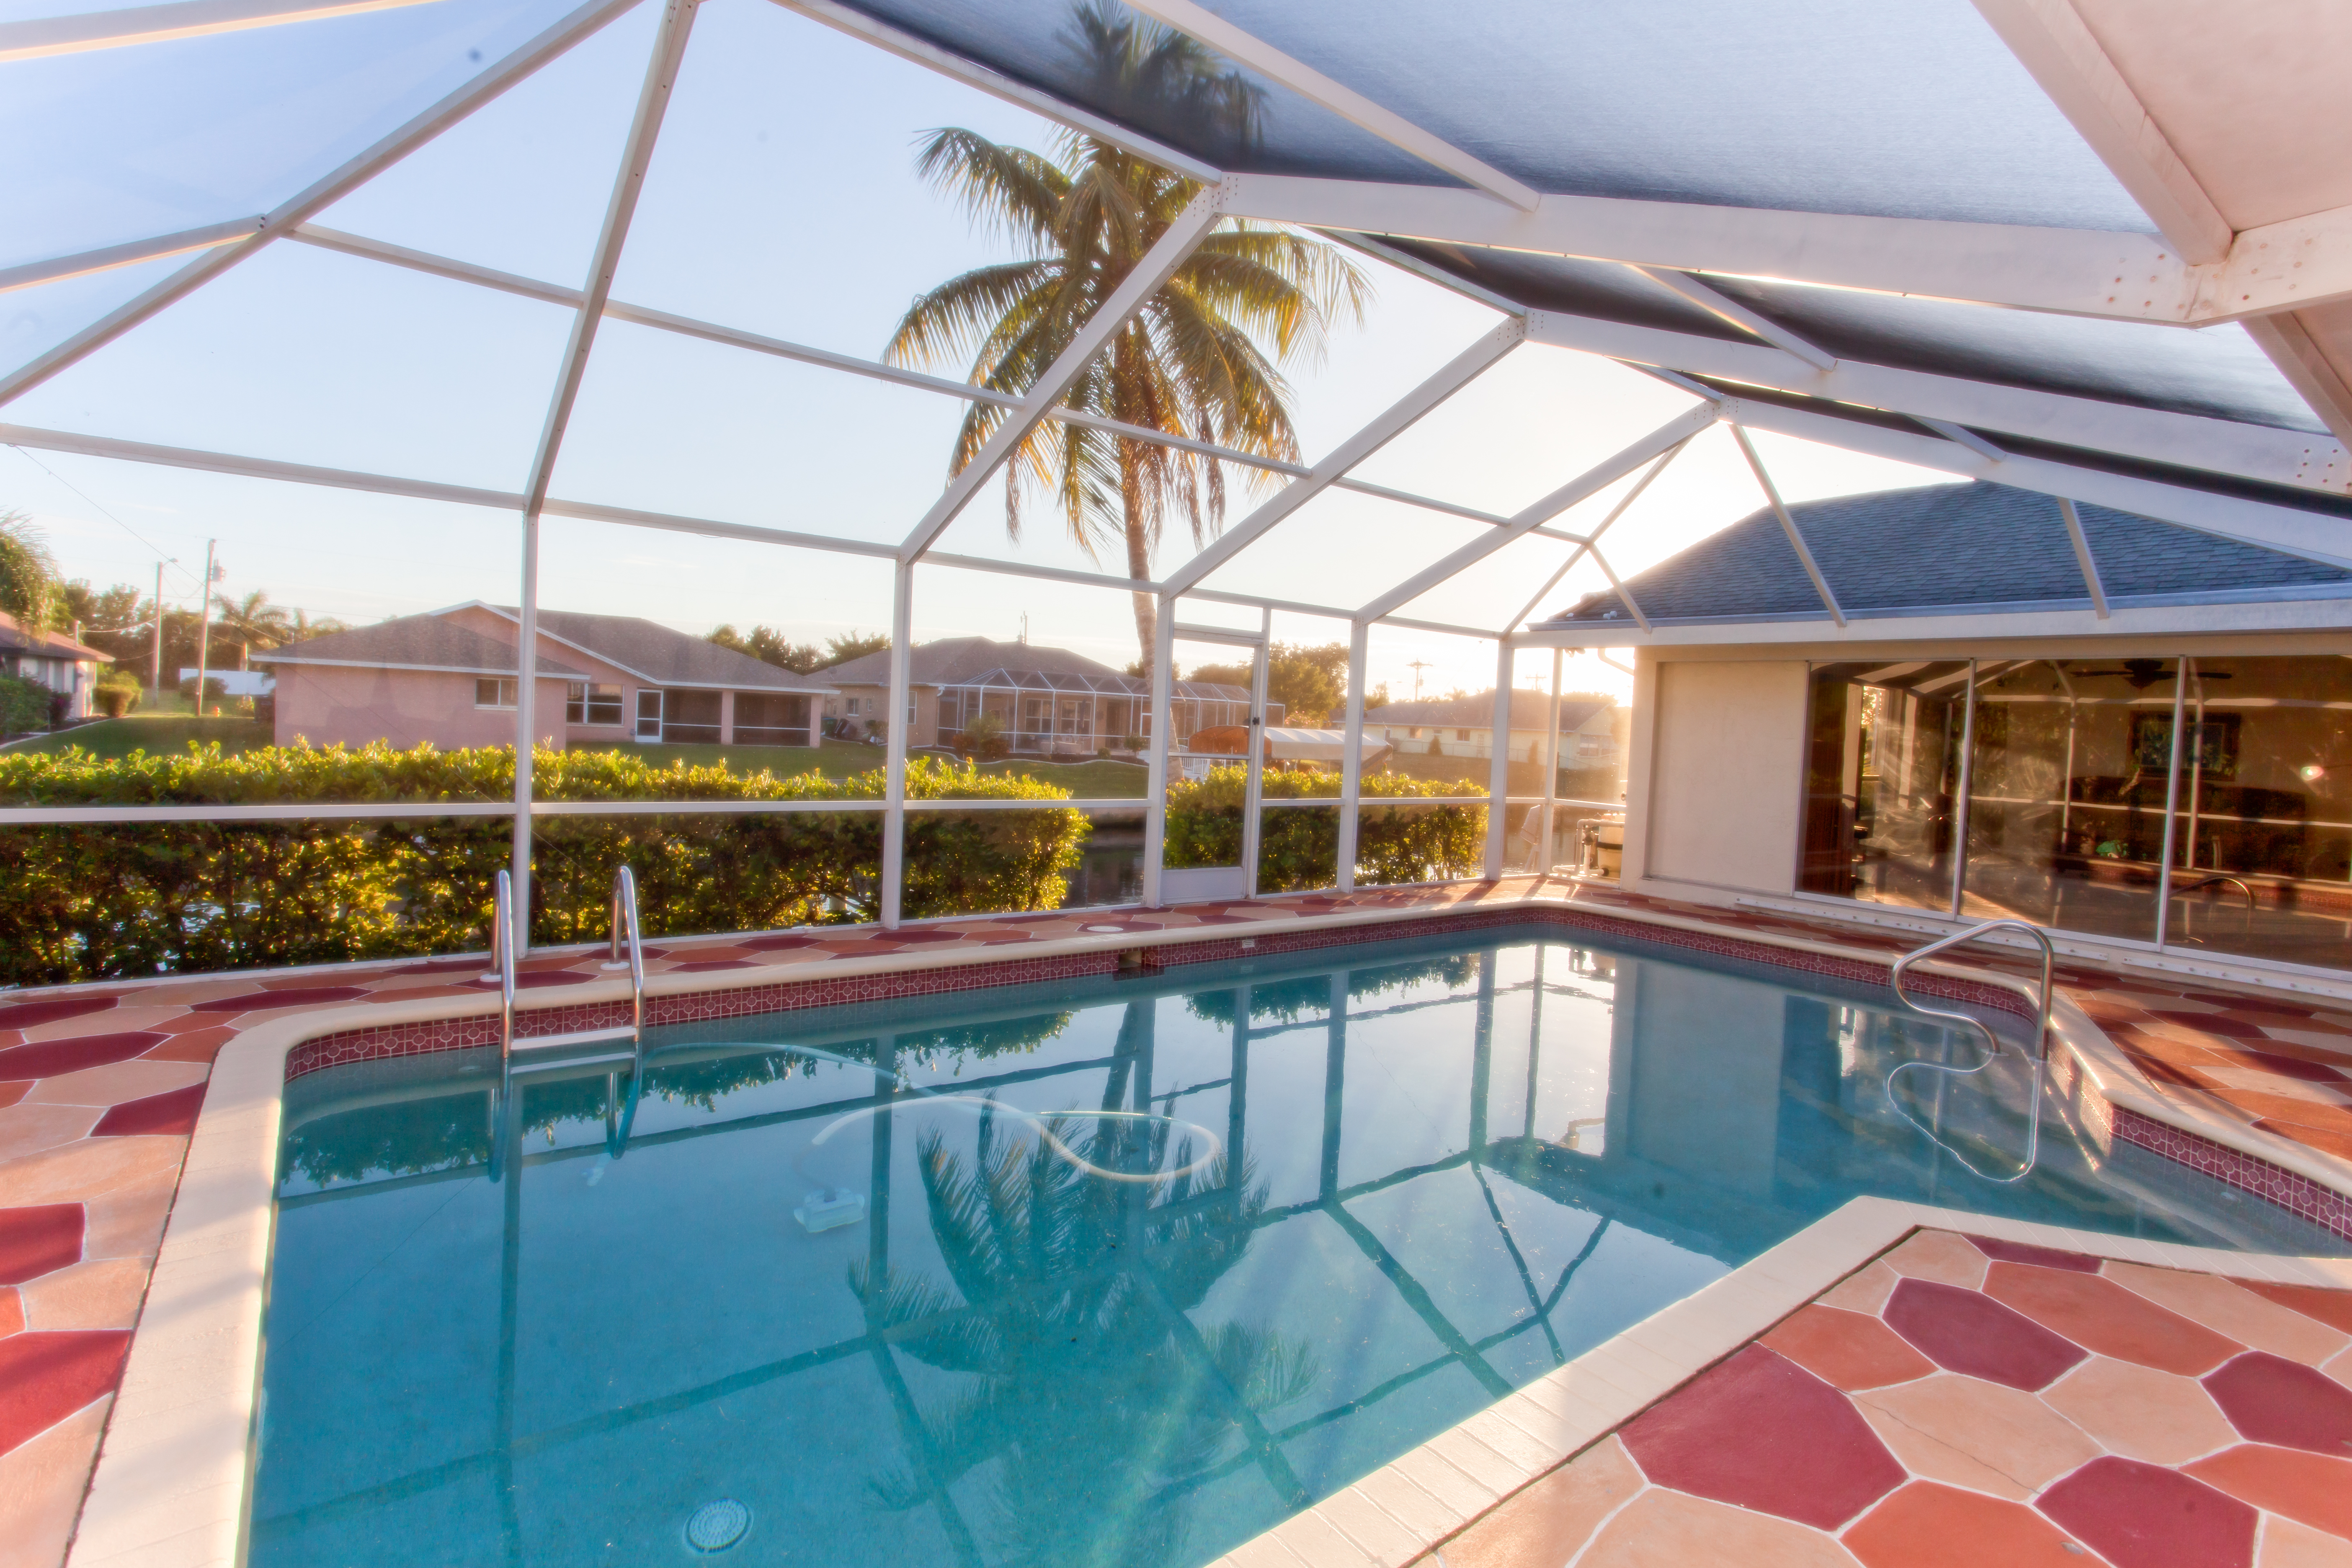 Direct Access Pool Home – $439,900